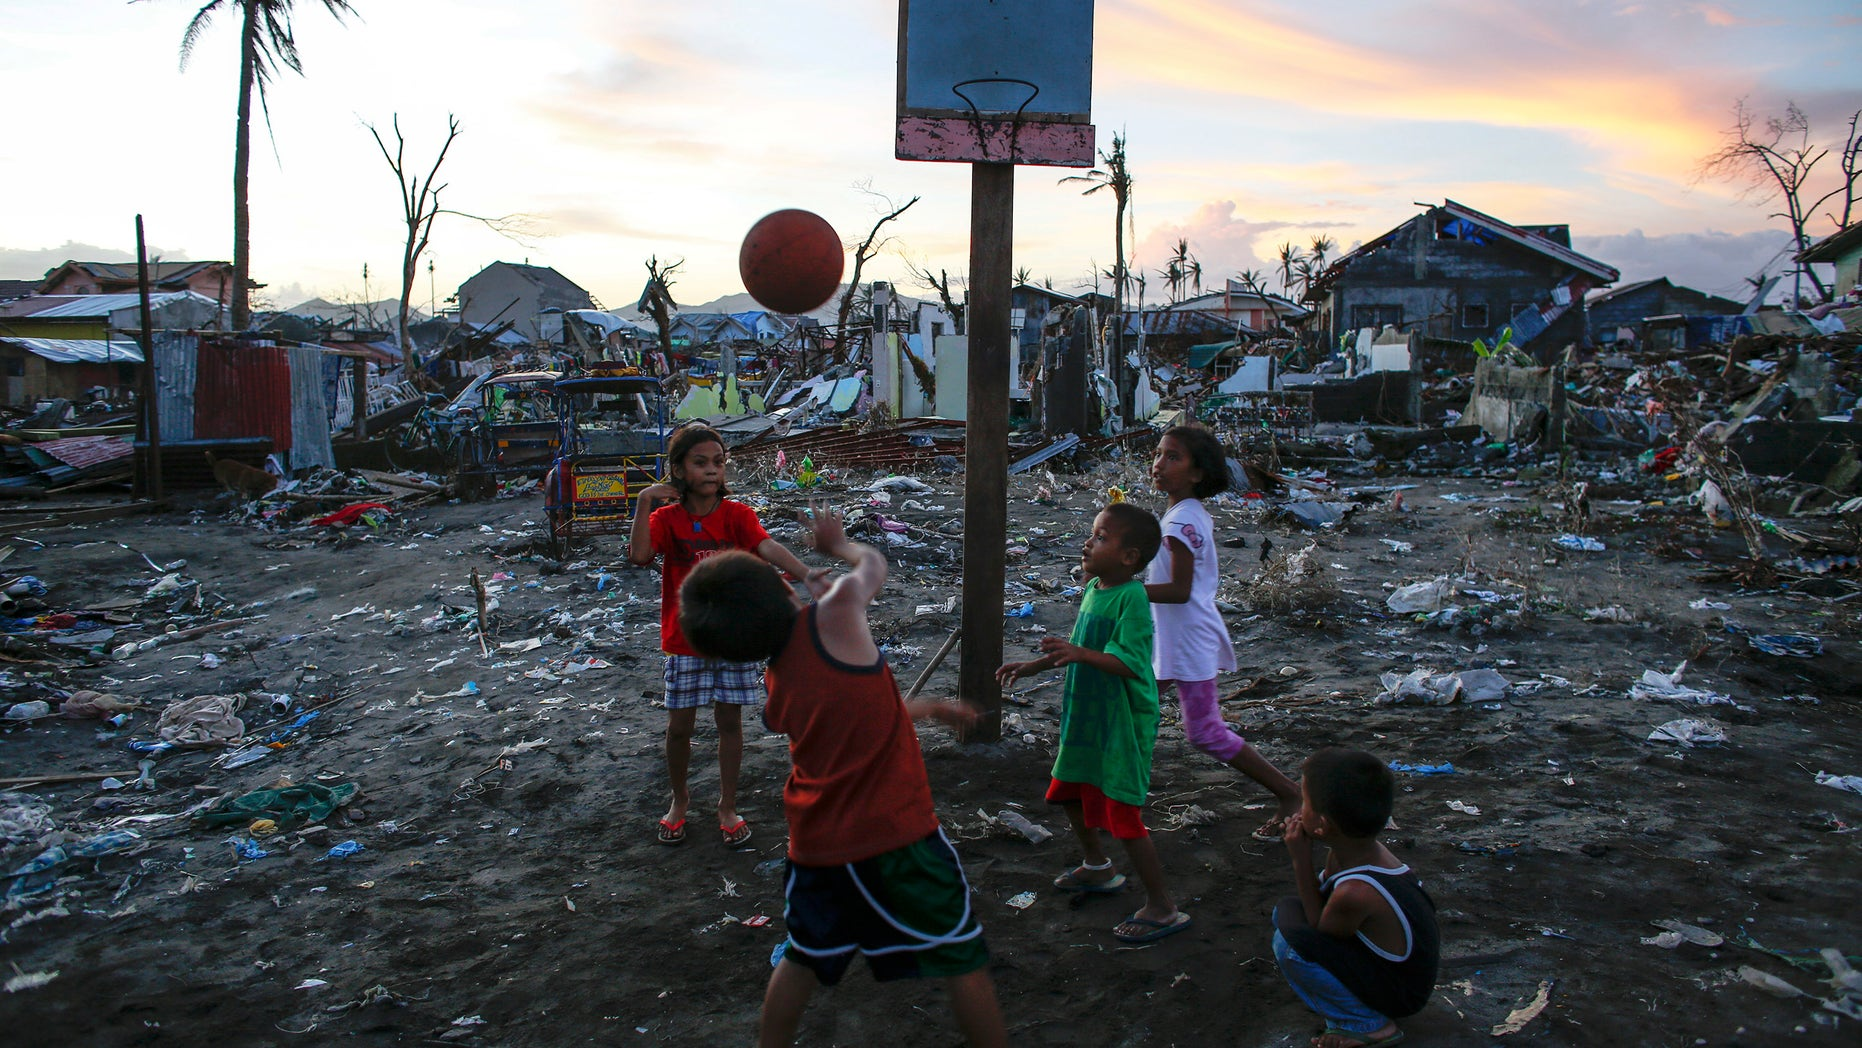 Children play basketball at an area devastated by Typhoon Haiyan in Tacloban city November 24, 2013. REUTERS/Athit Perawongmetha